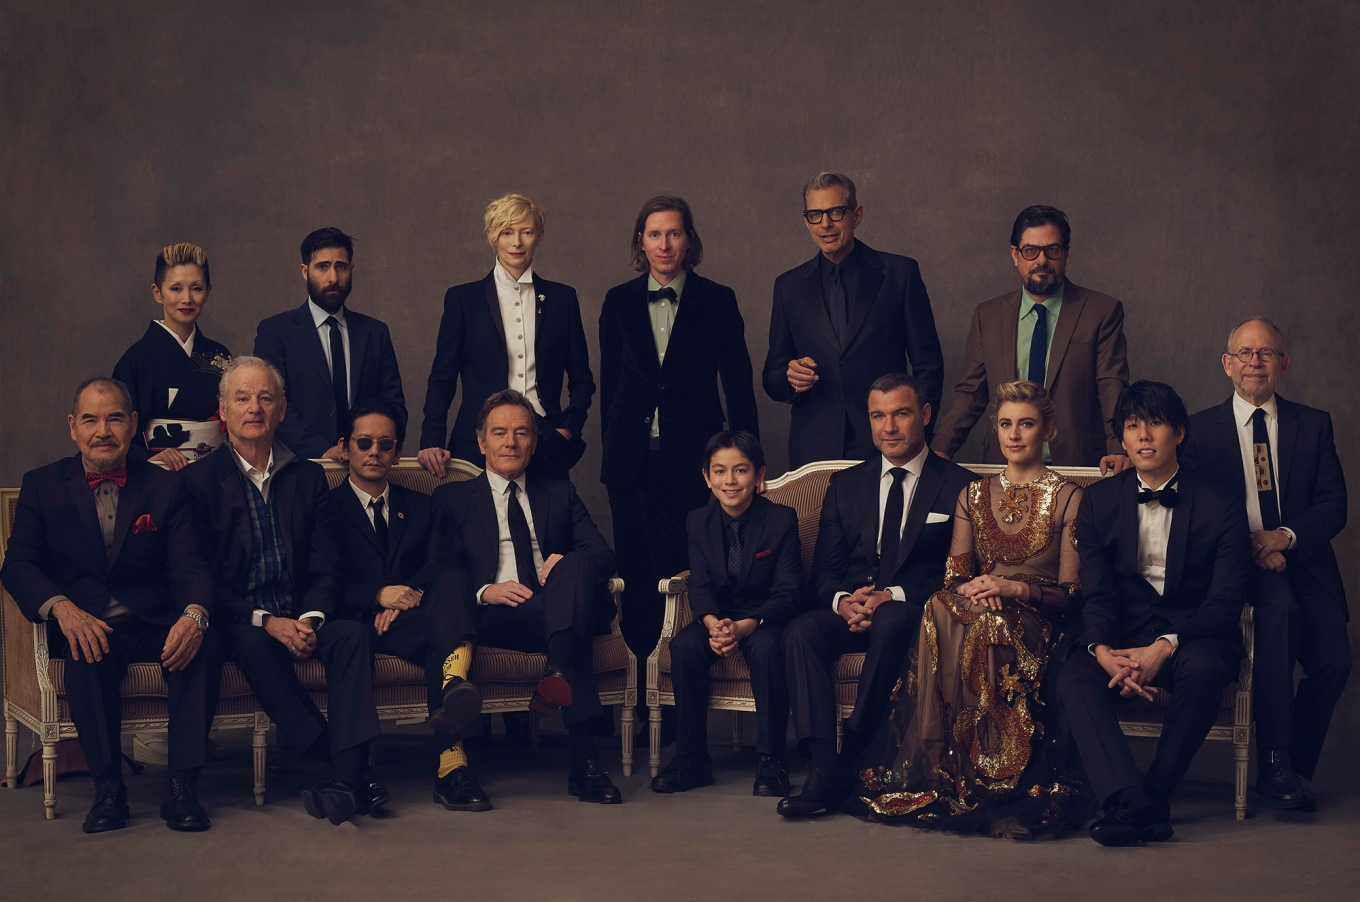 ISLE OF DOGS cast with director Anderson